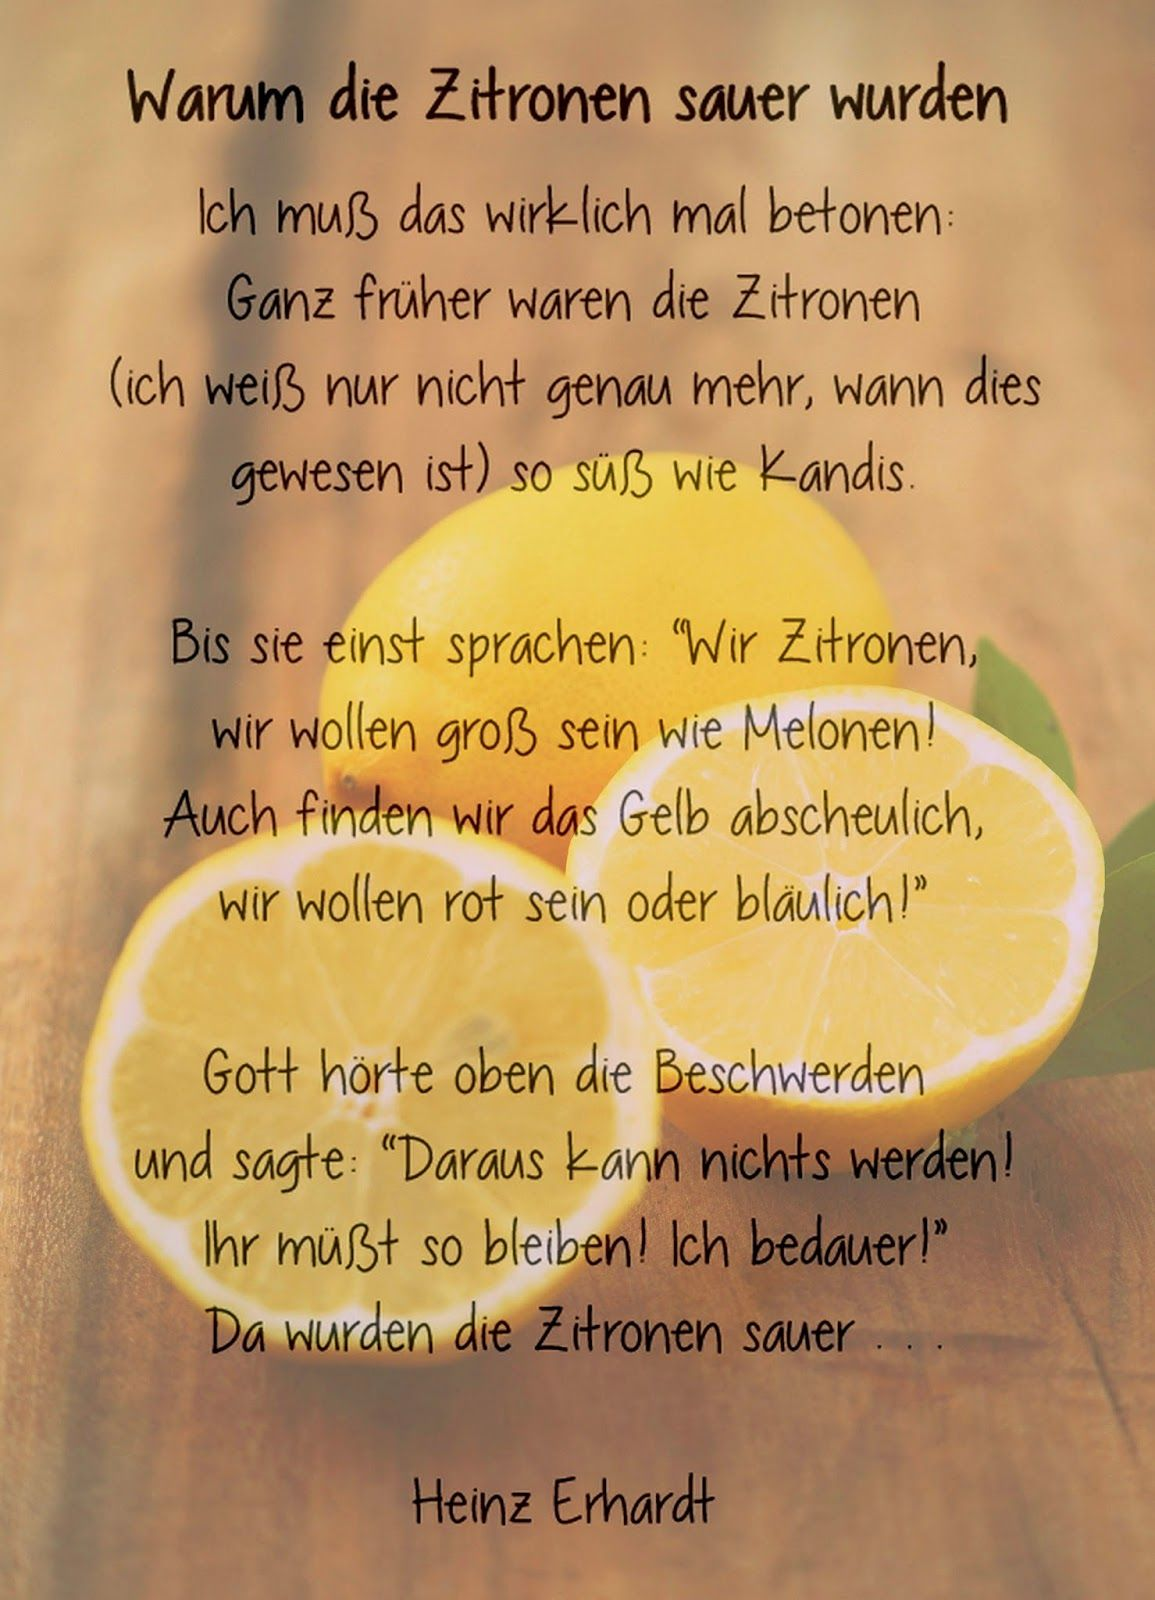 Welcome to the sweet side of life - Hier auf meinem